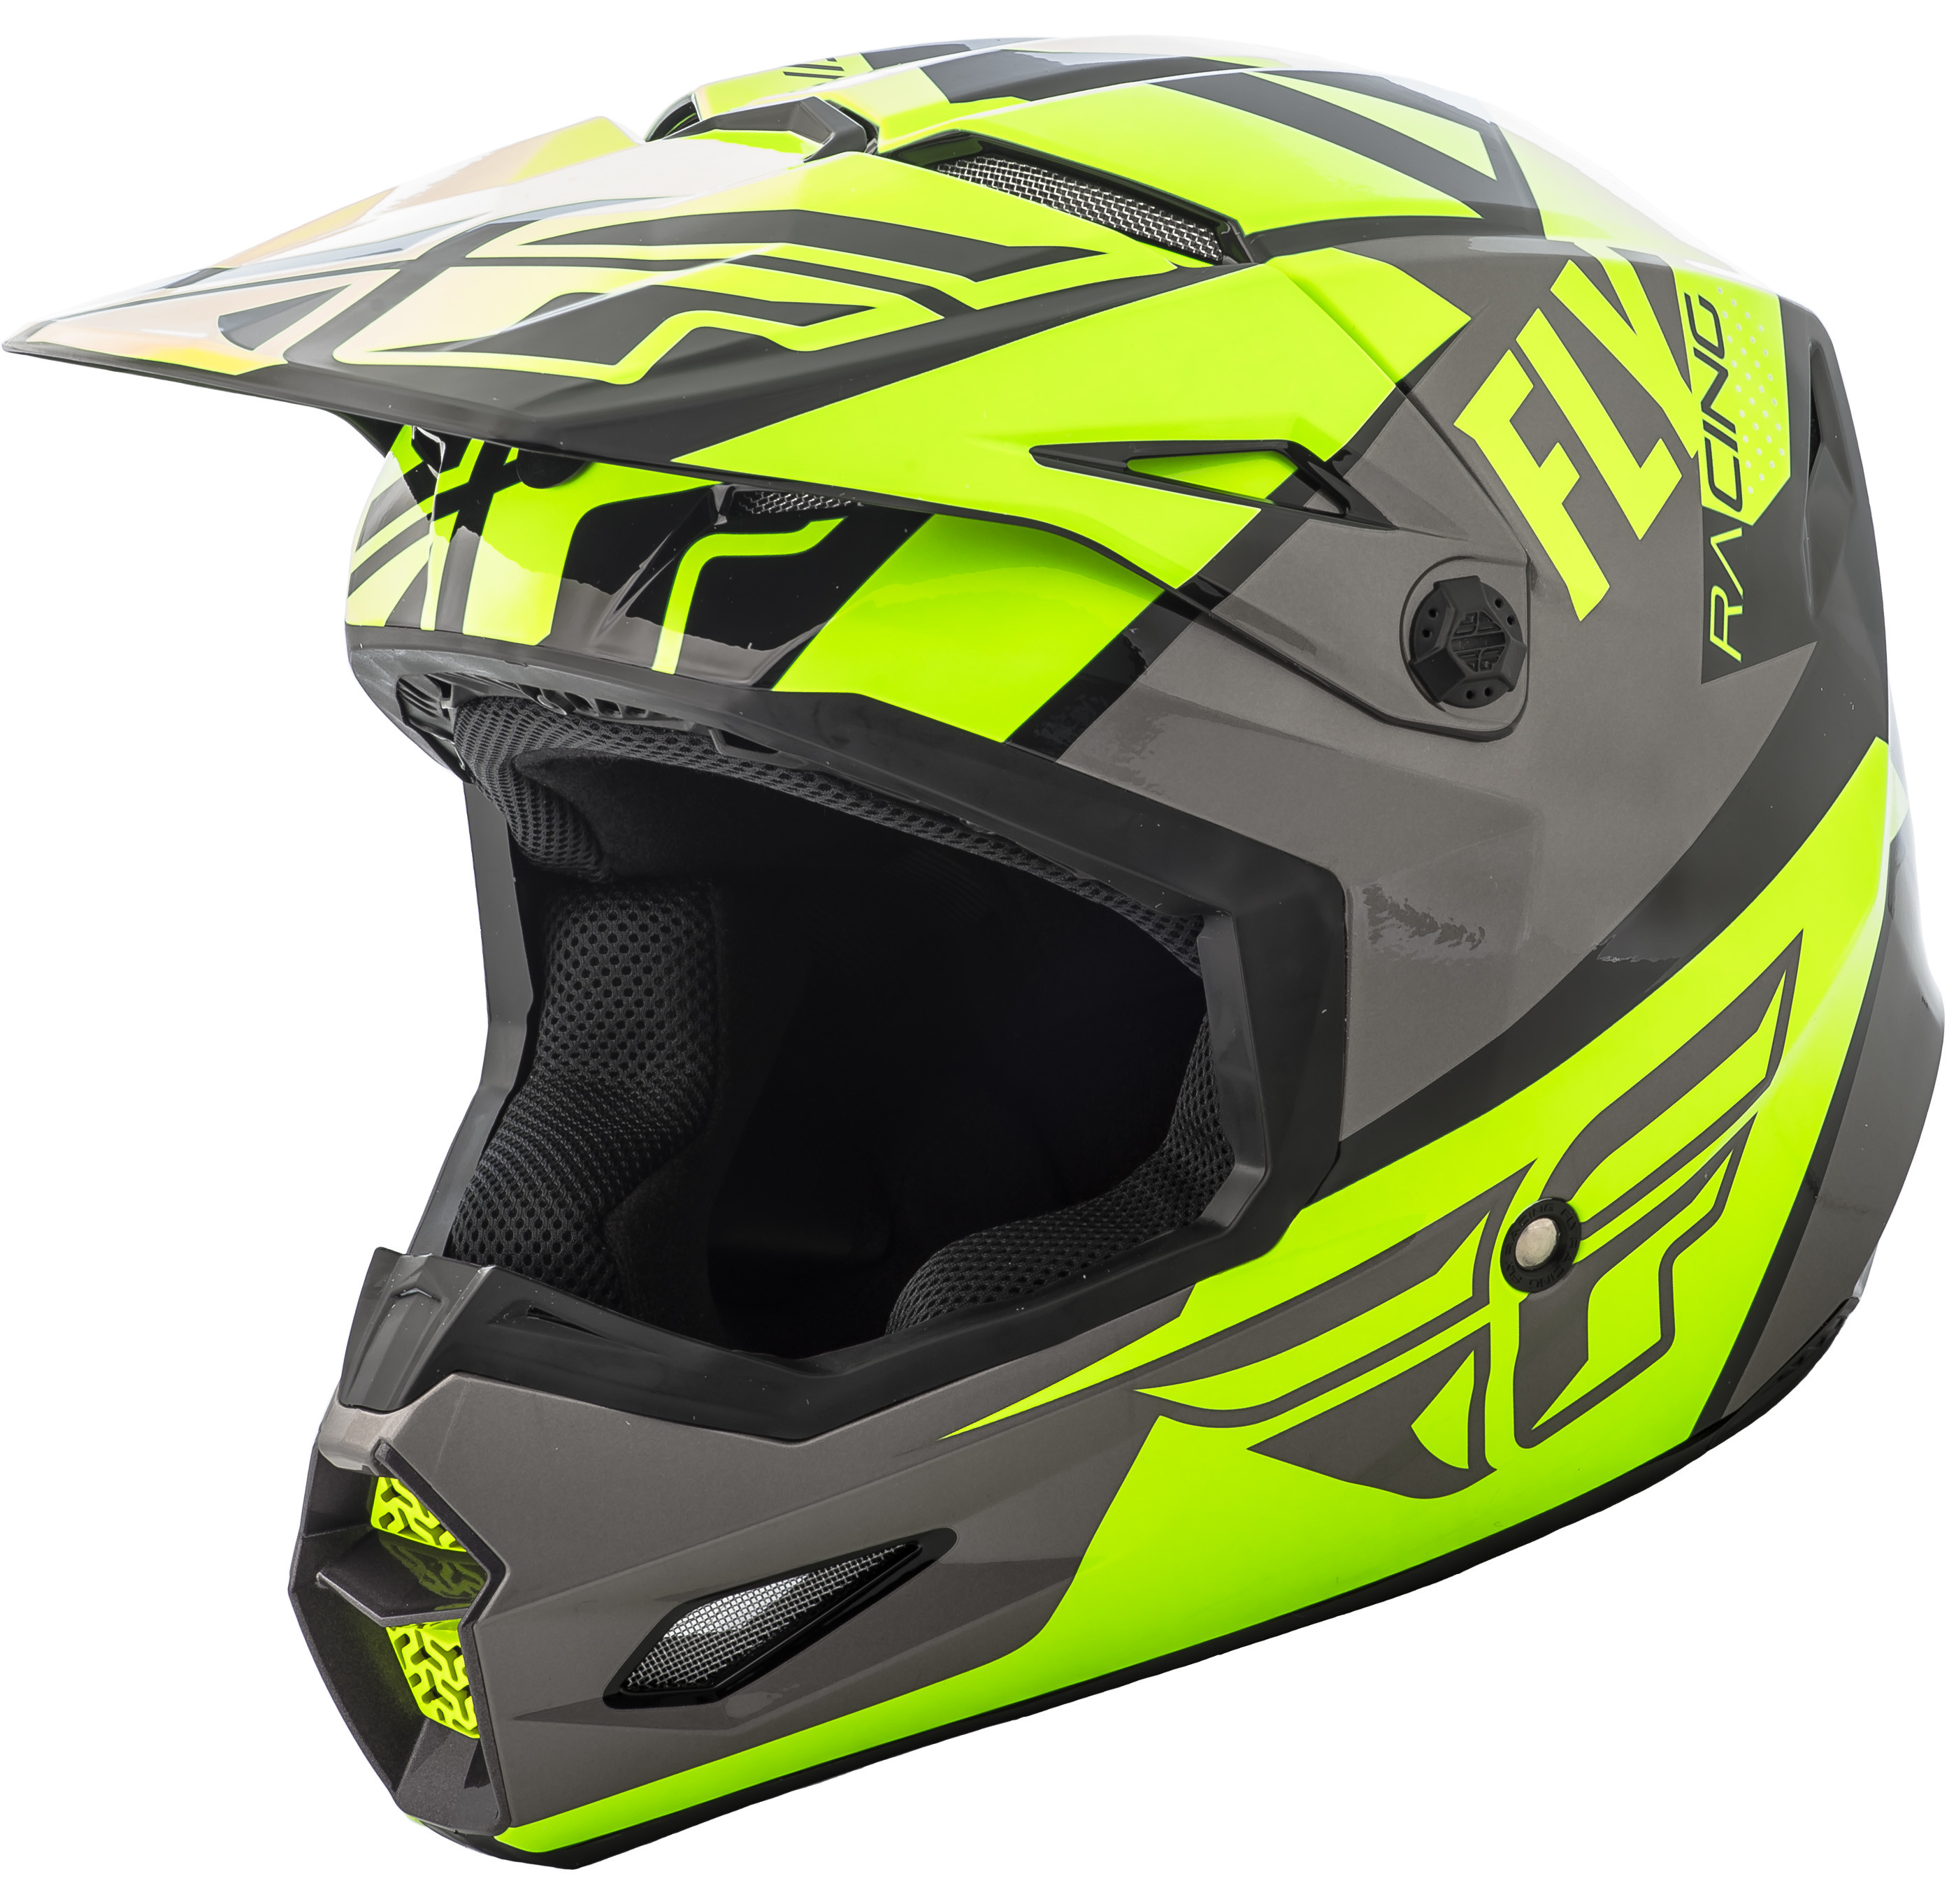 Elite Guild Helmet Hi-Vis/Grey/Black Lg